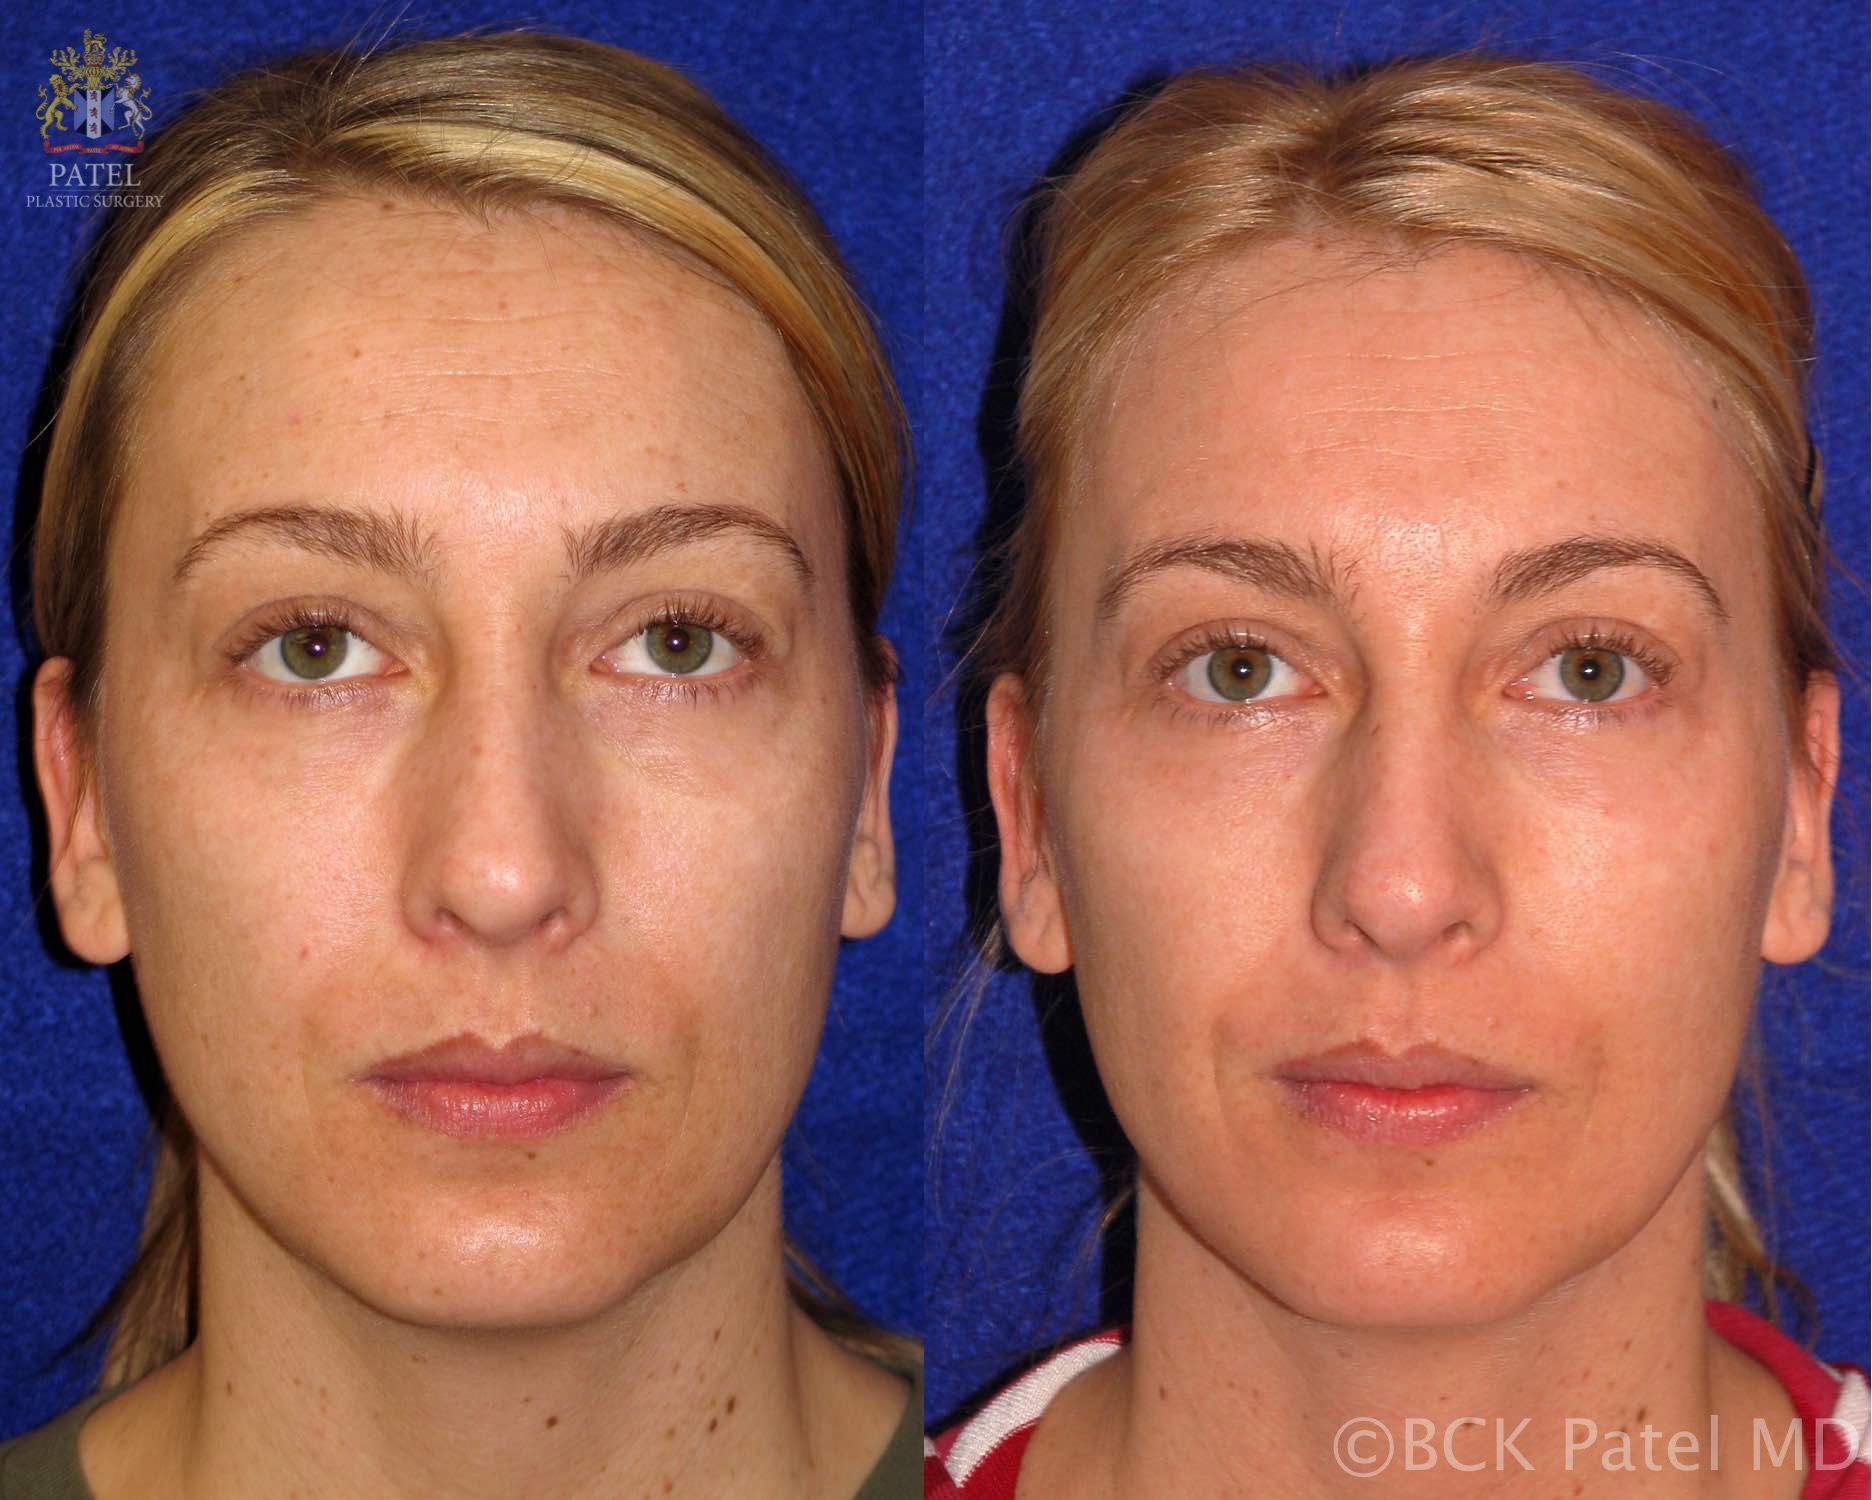 englishsurgeon.com. Results fo full face trichloroacetic acid chemical peels by Dr BCK Patel MD, FRCS, Salt Lake City, Utah, St George, London